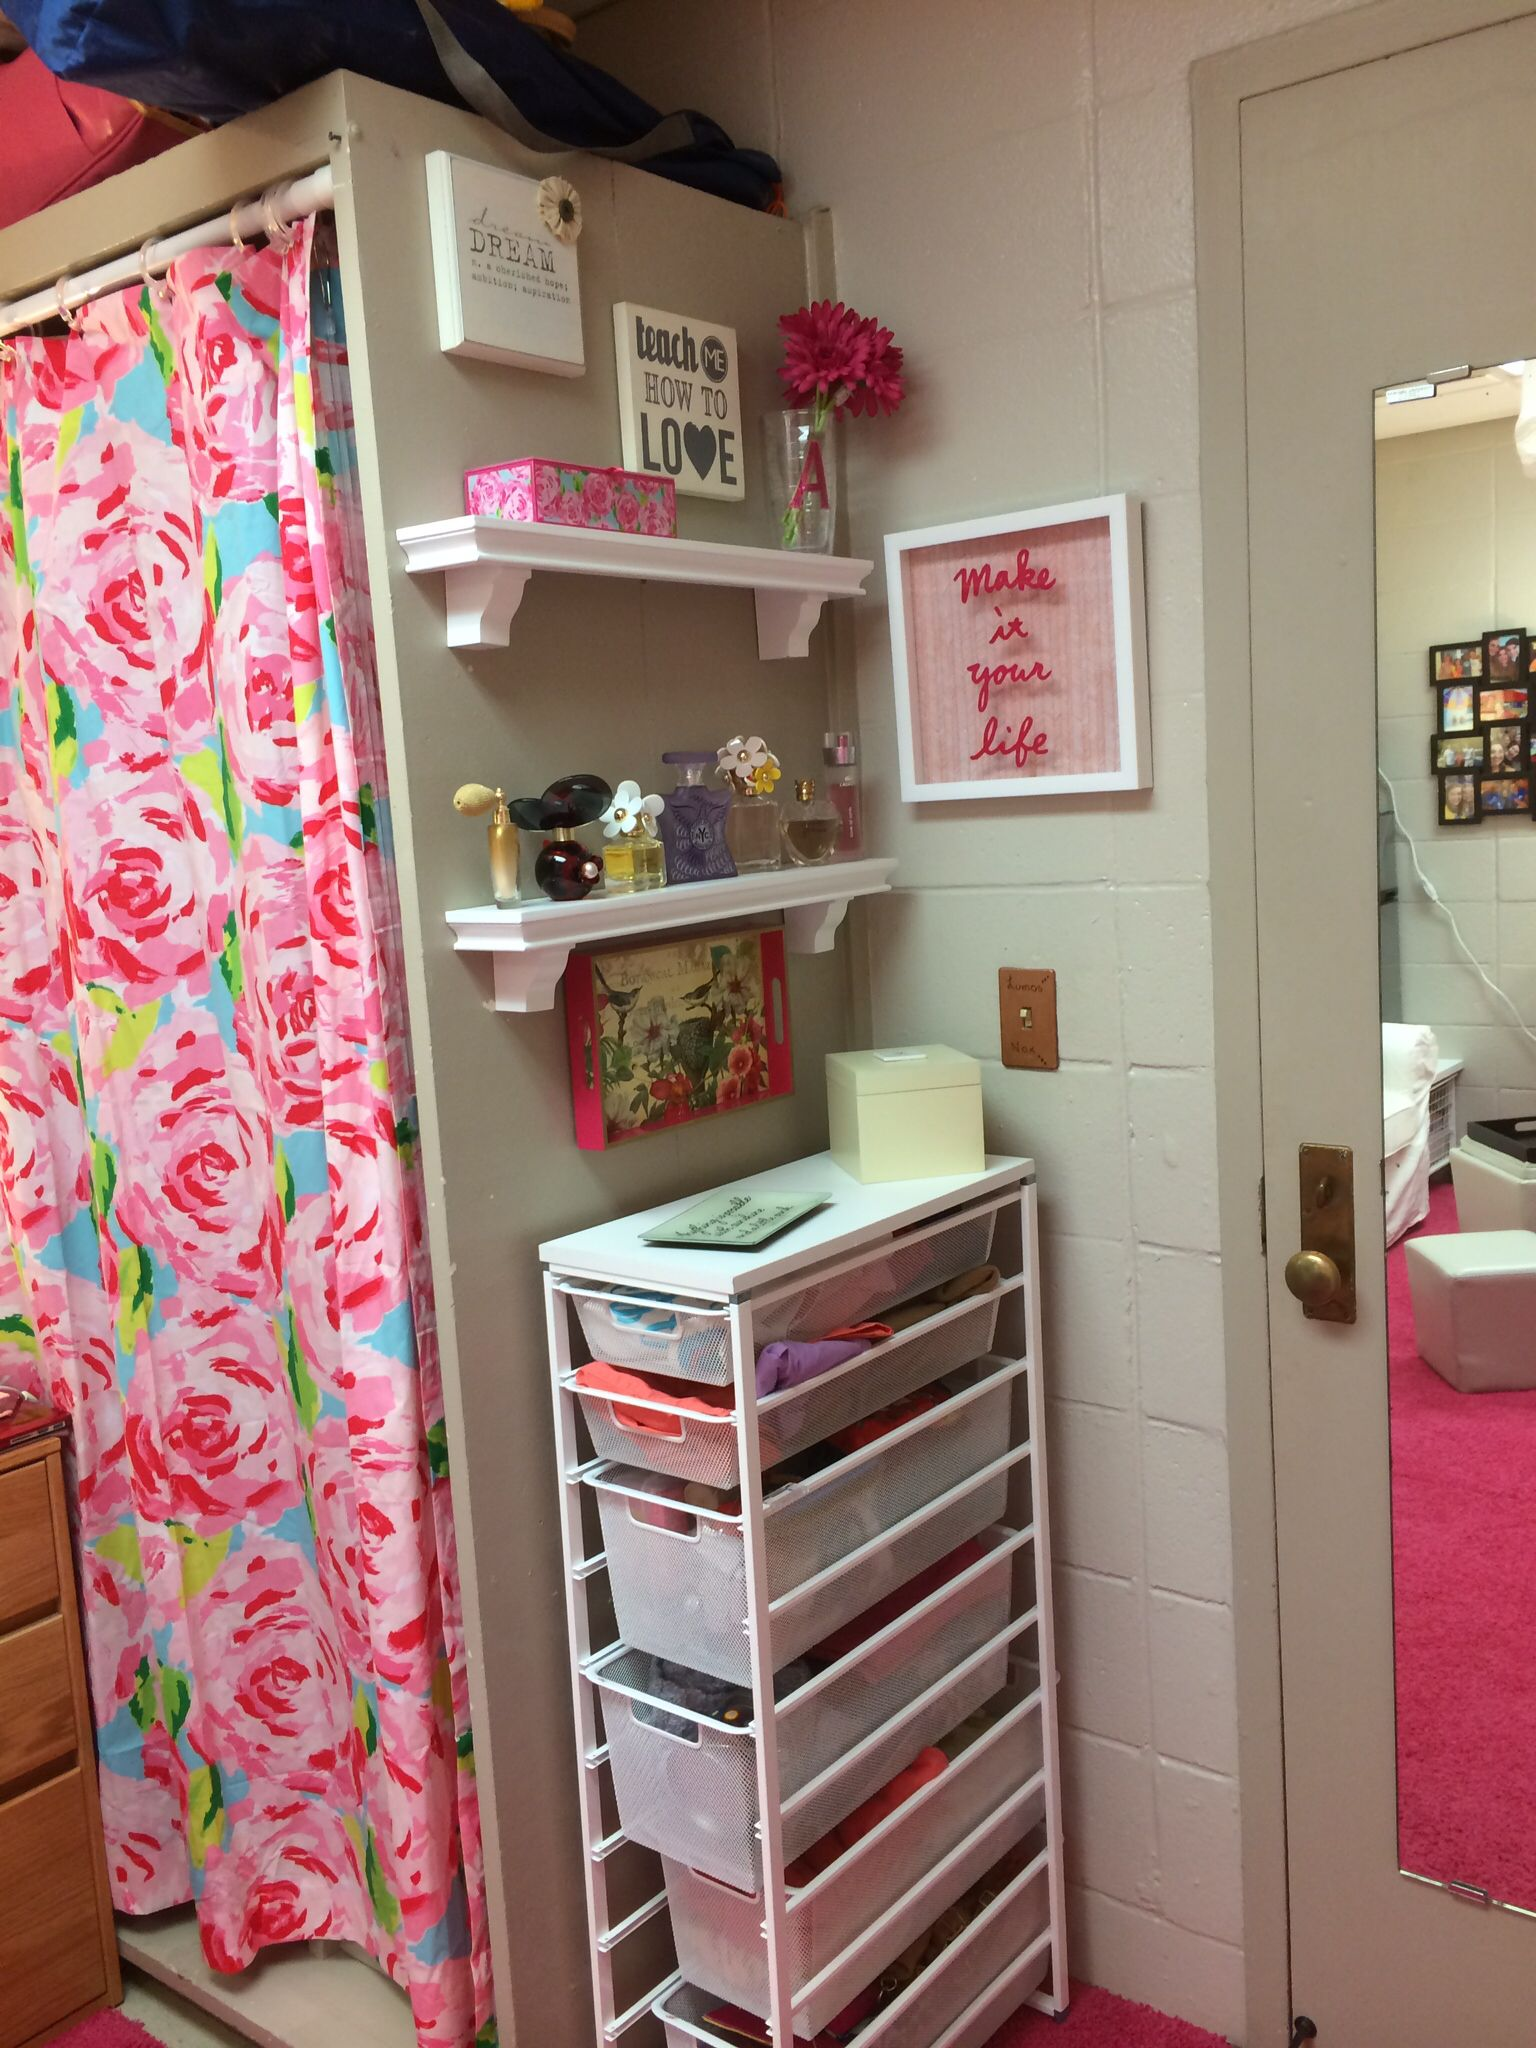 container store dorm on shelves from target and elfa from container store dorm room inspiration dorm inspiration elfa shelving pinterest